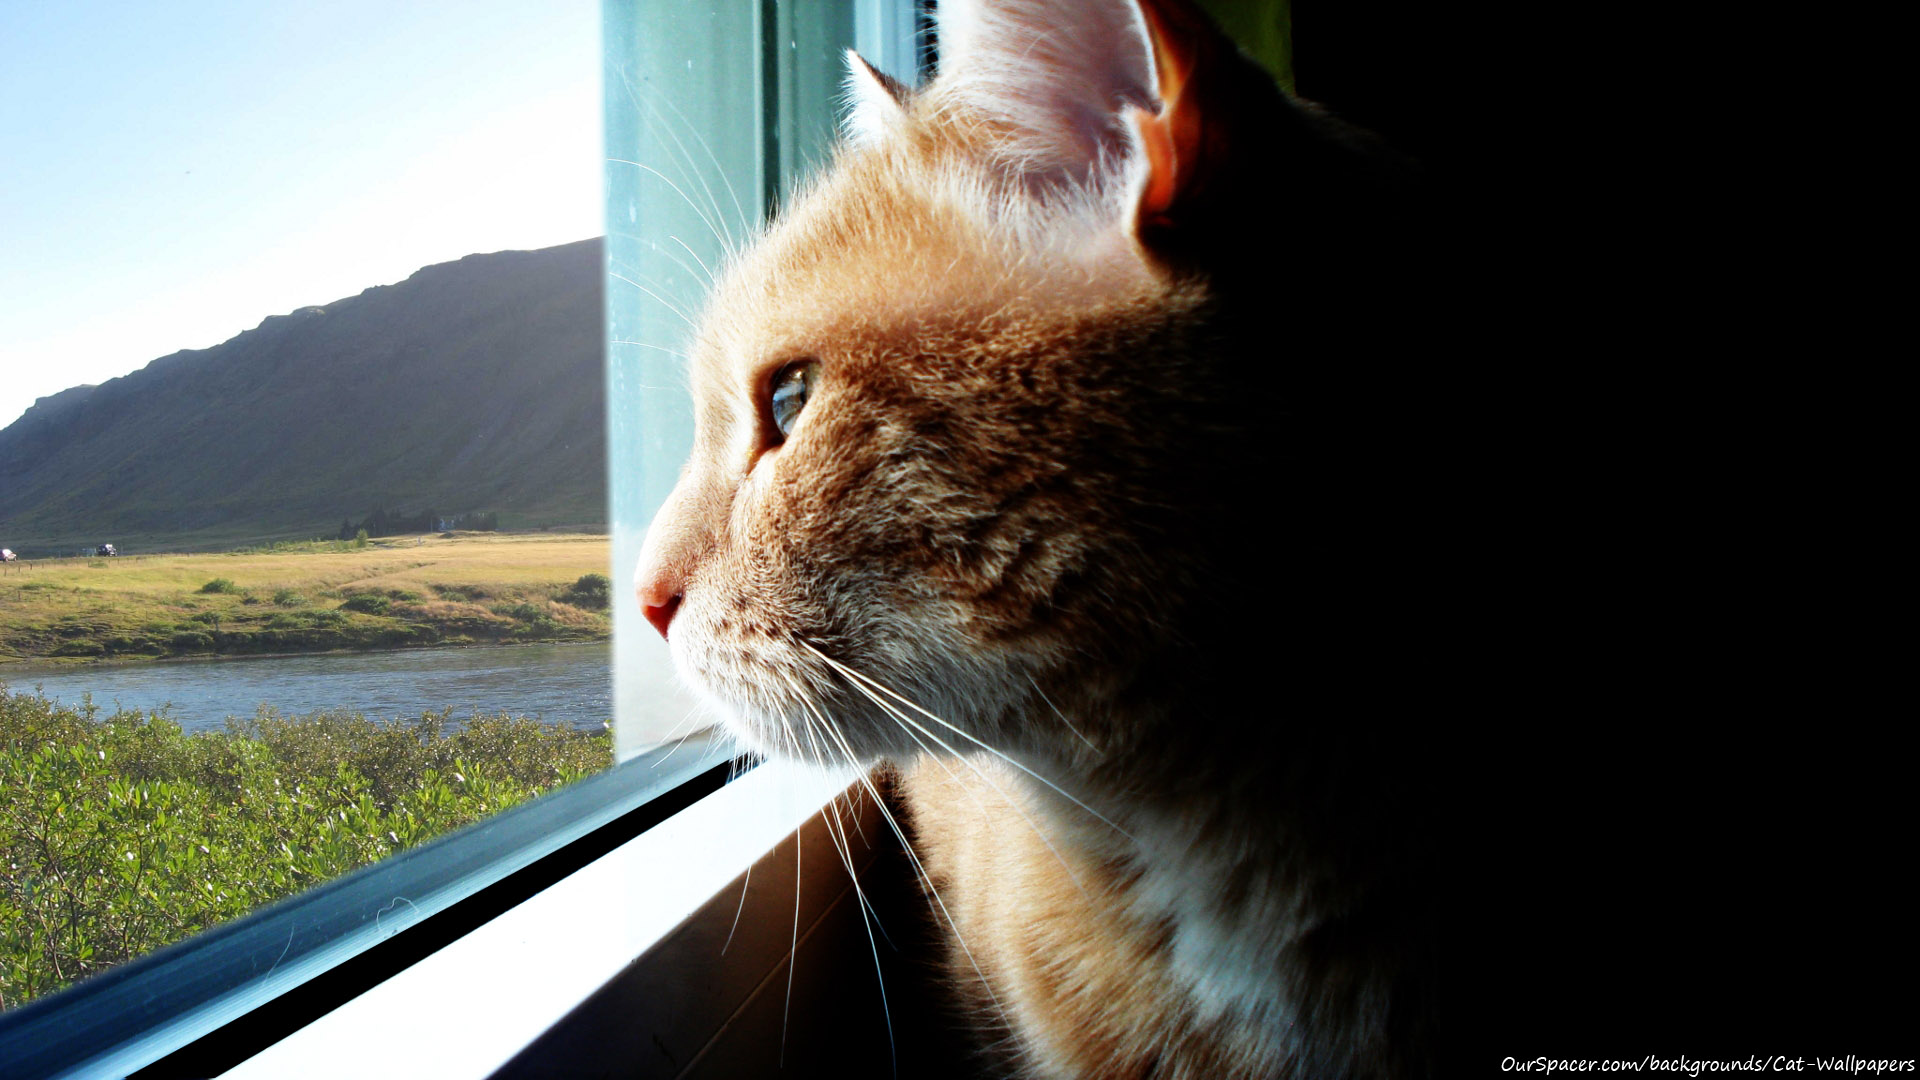 Cat looking out window scenic background wallpapers for myspace, twitter, and hi5 backgrounds